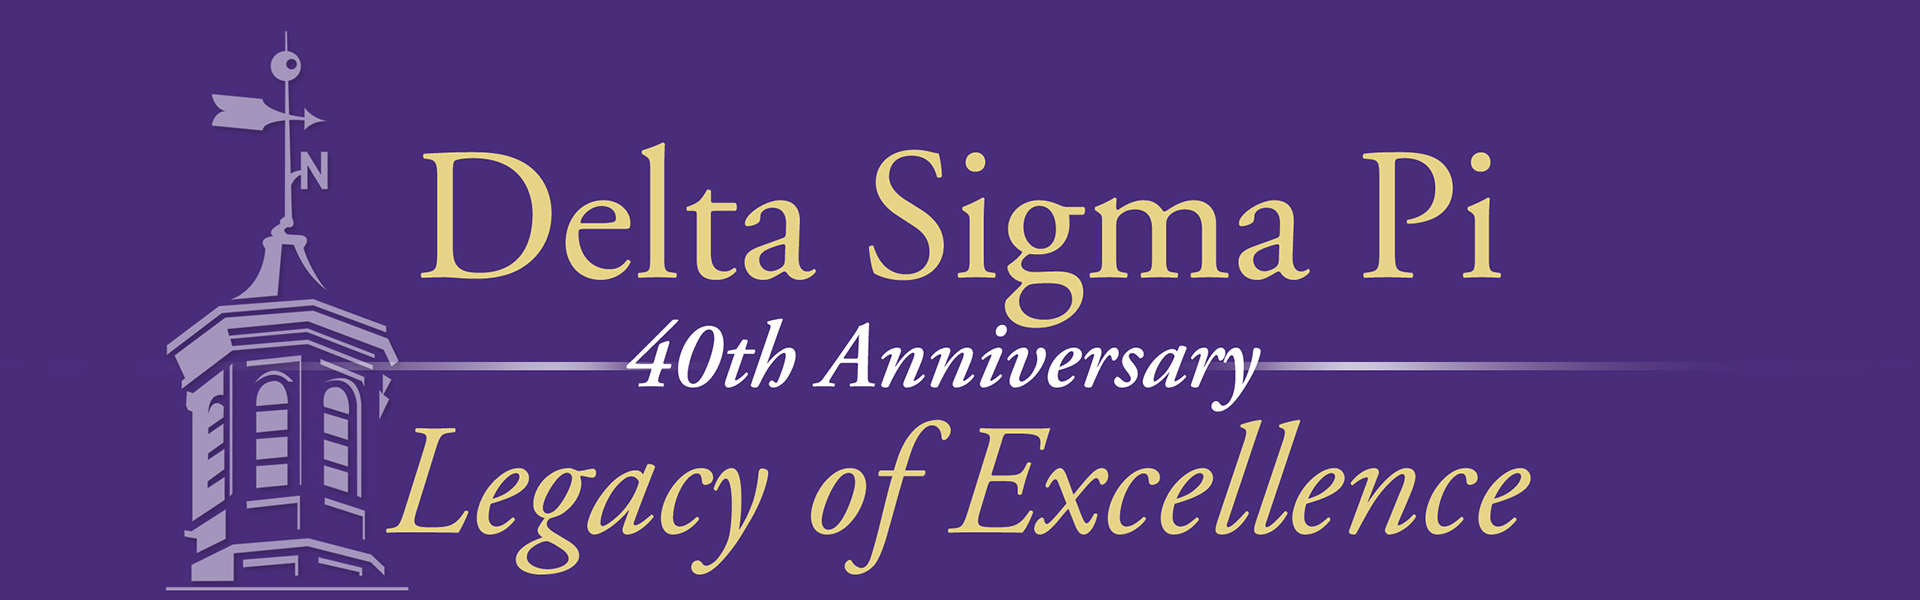 Delta Sigma Pi Legacy of Excellence